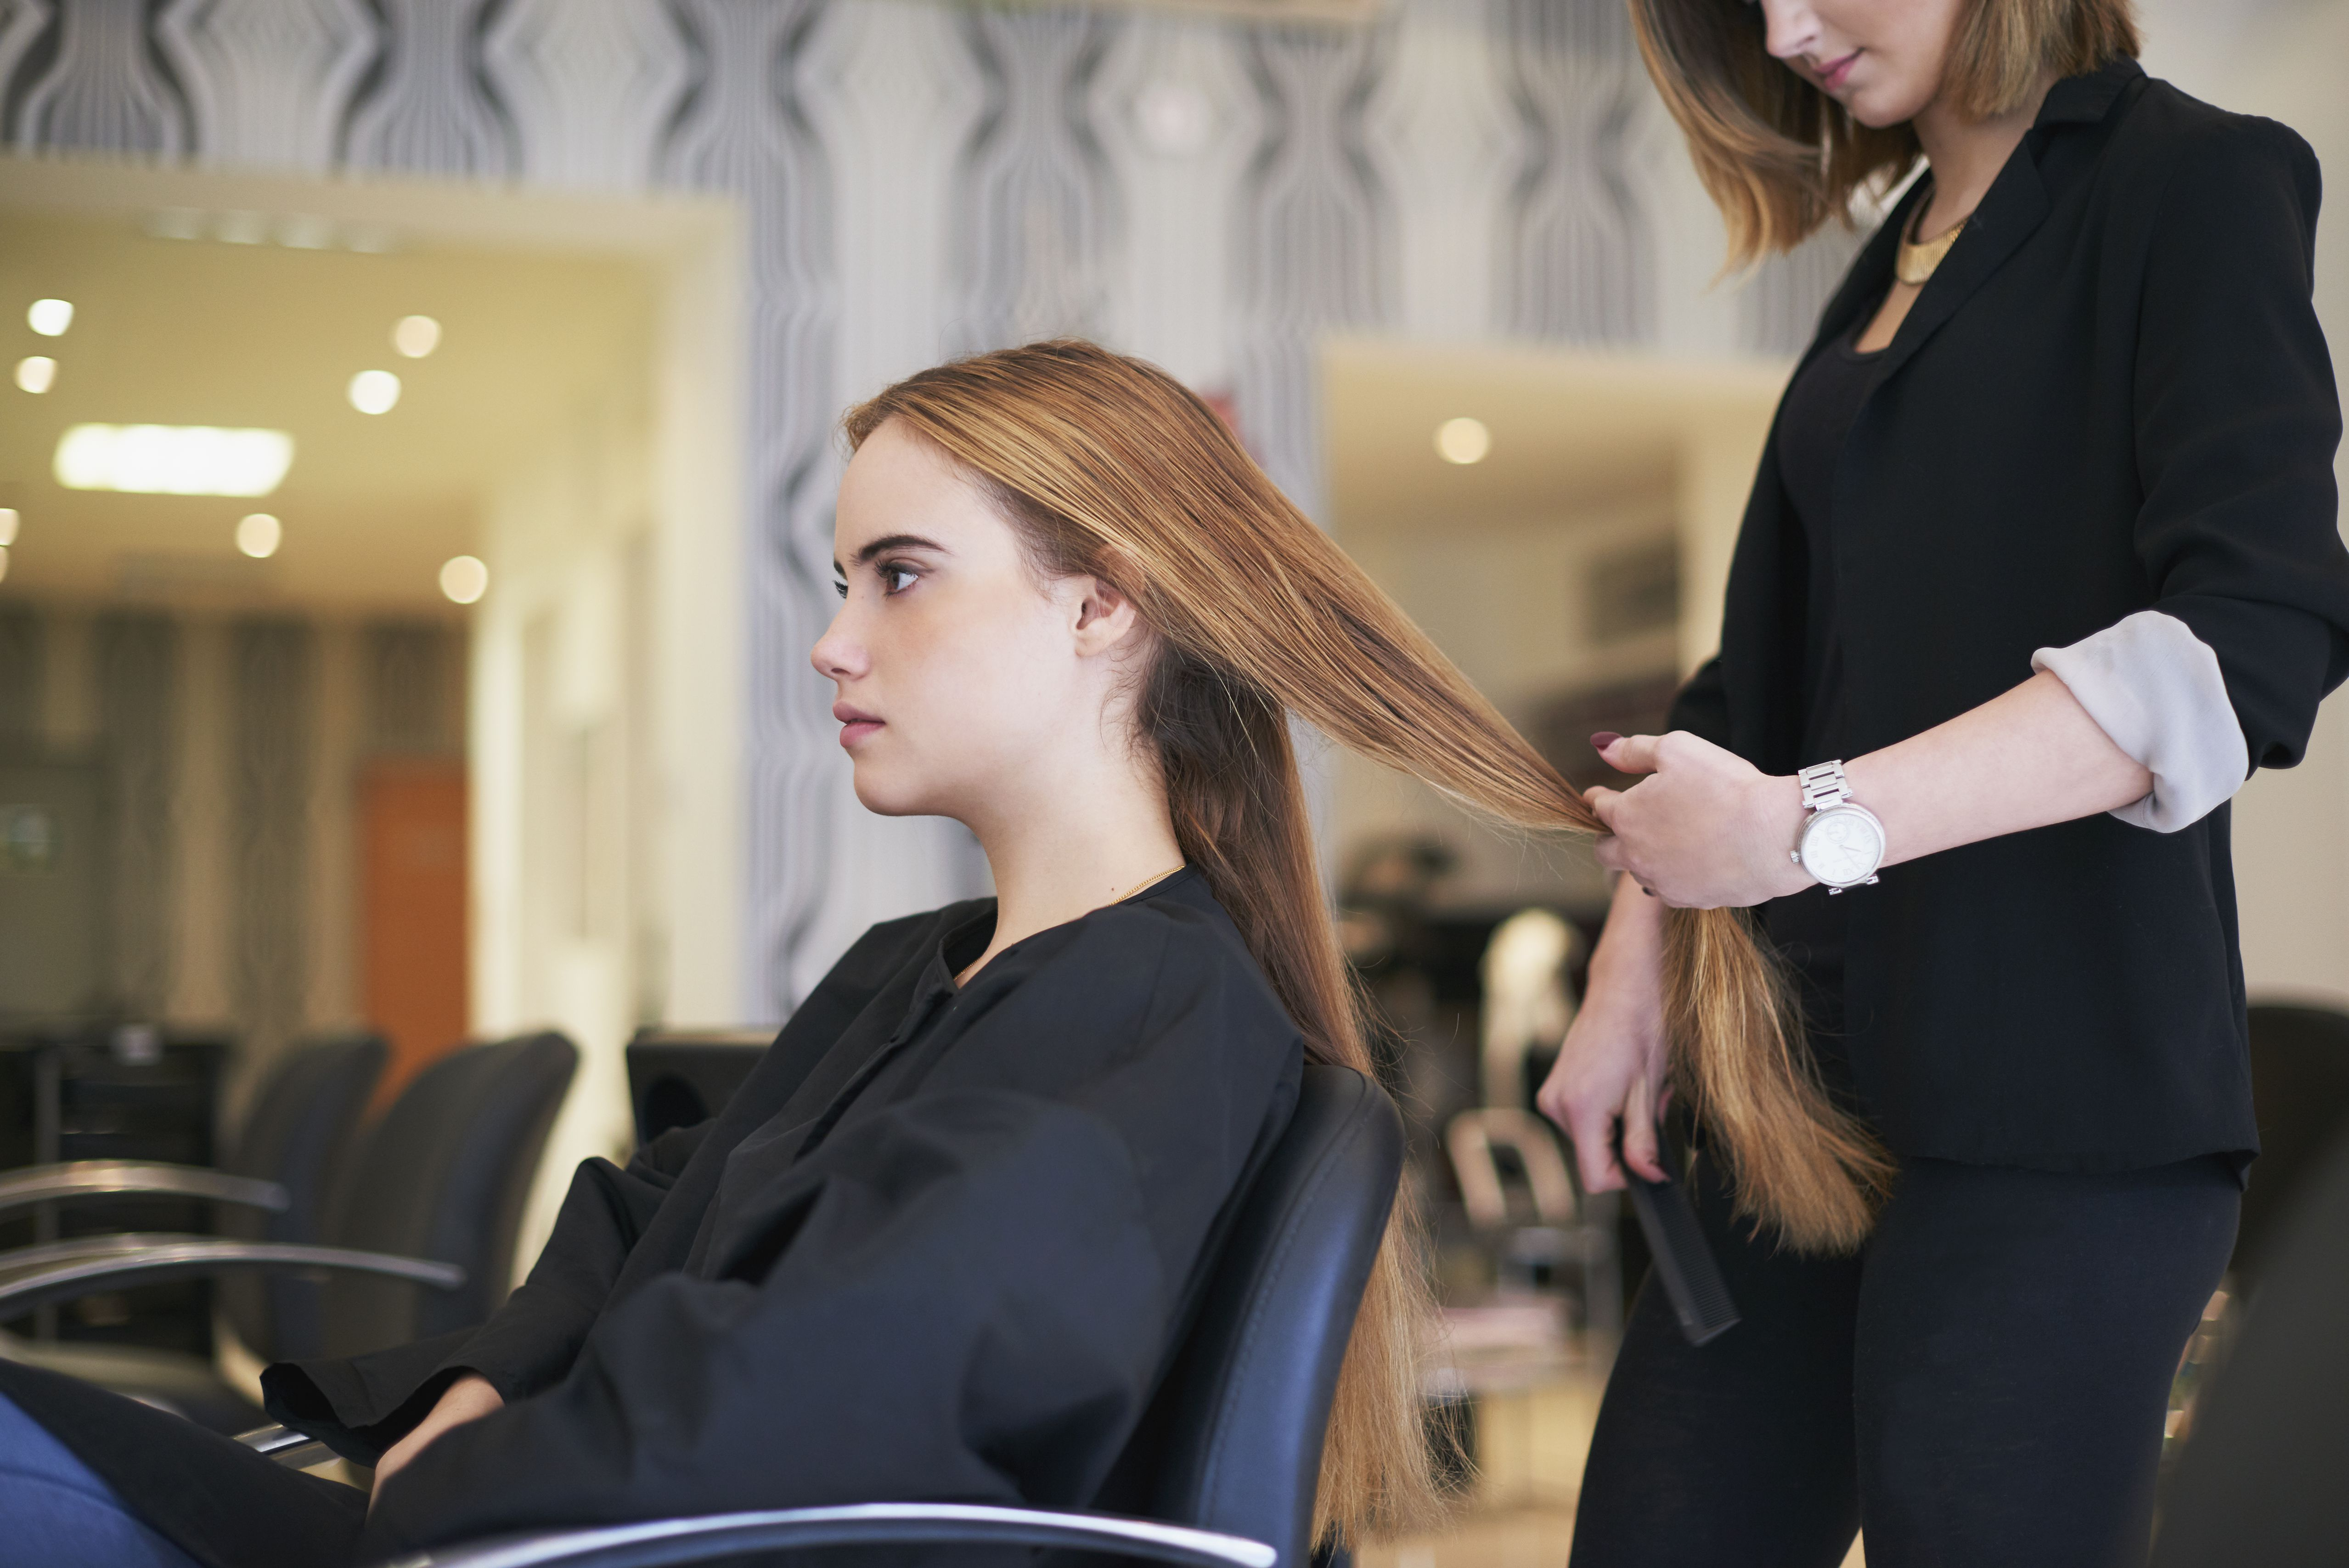 B Styled Hair Salon: How To Get A Haircut You Won't Hate